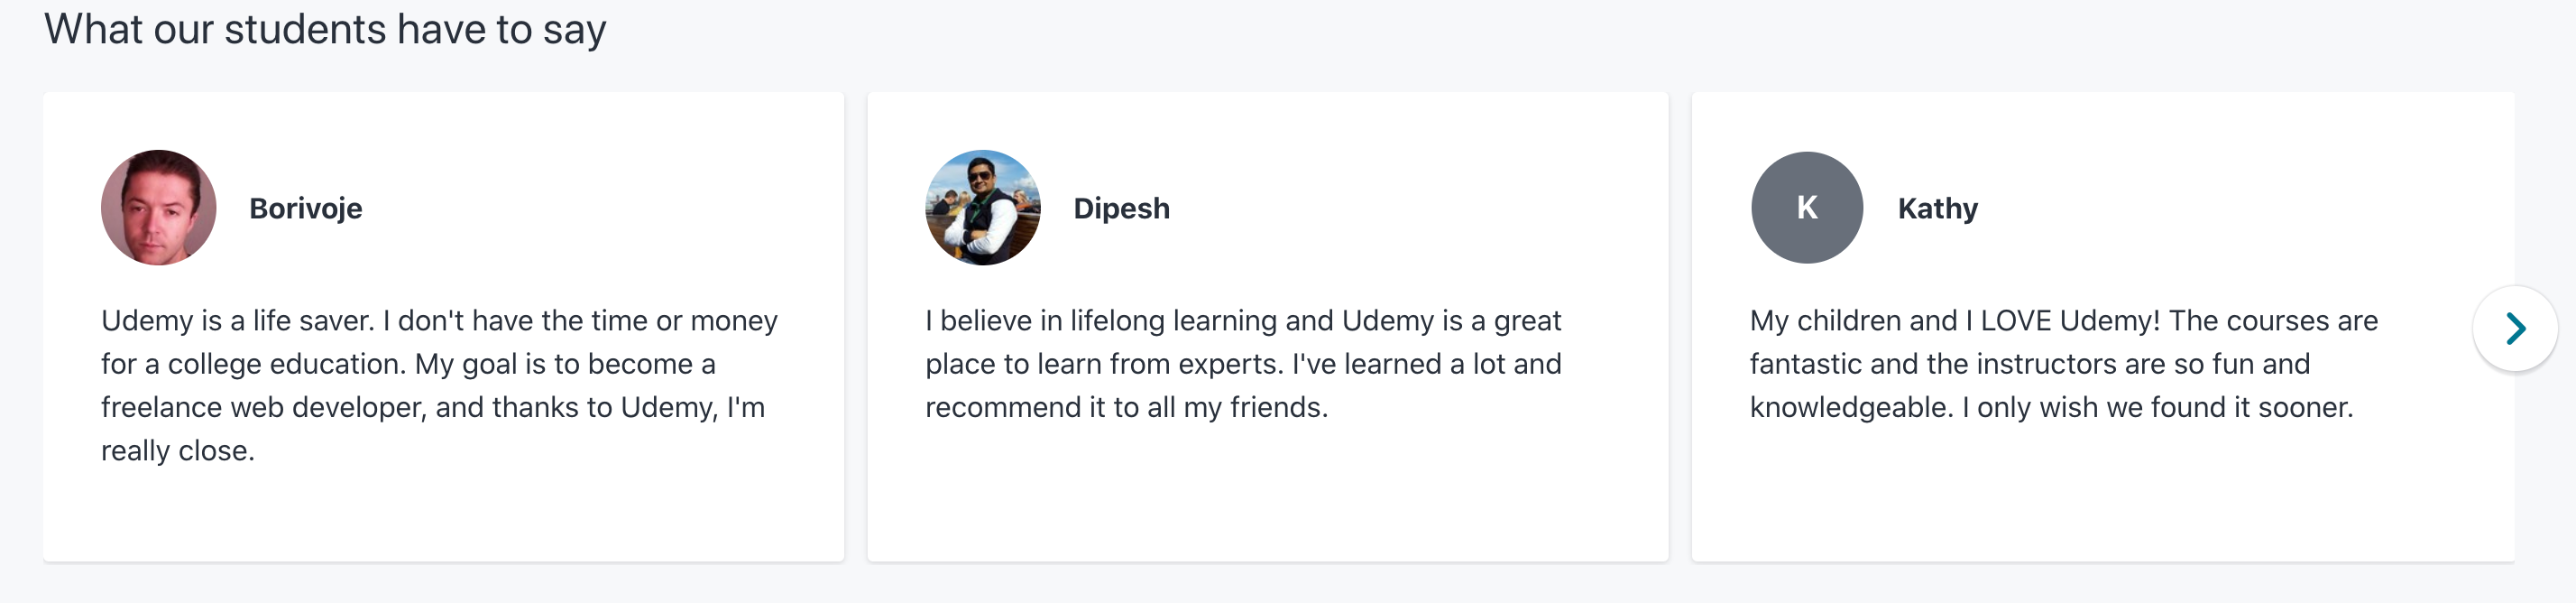 Udemy Customer Reviews